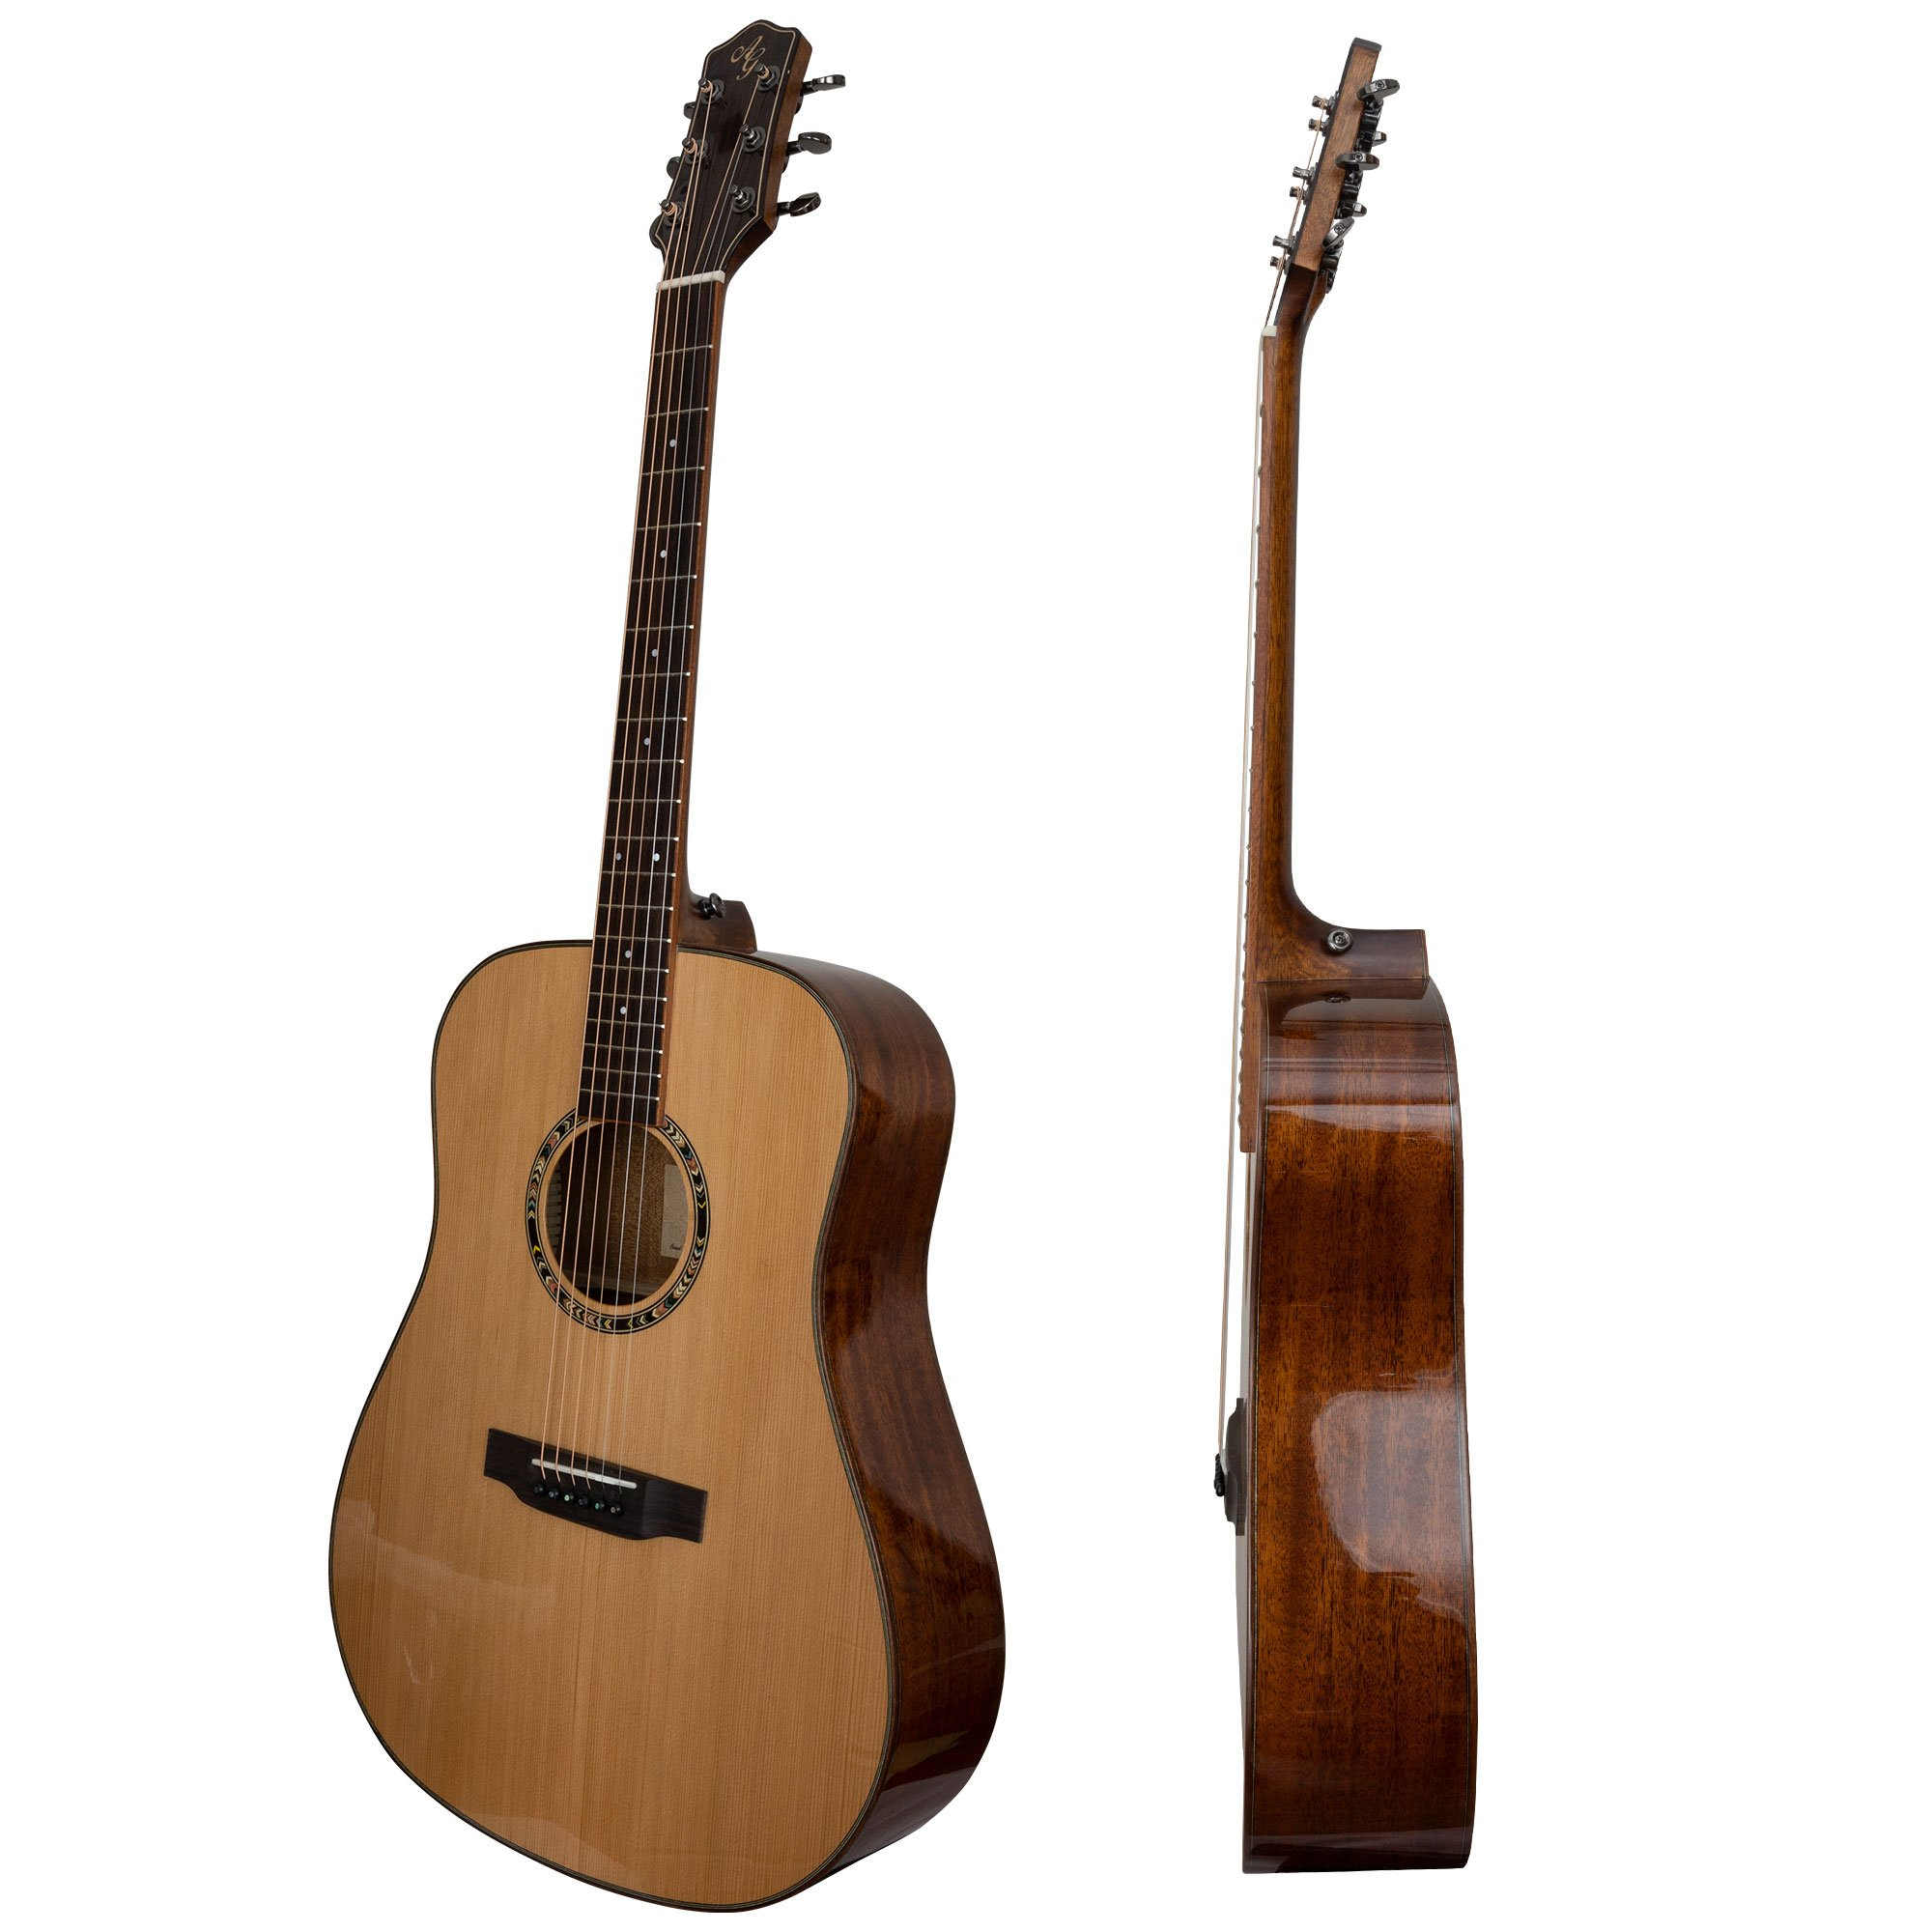 Antonio Giuliani DN-5 Dreadnought Mahogany Acoustic Guitar Outfit in action